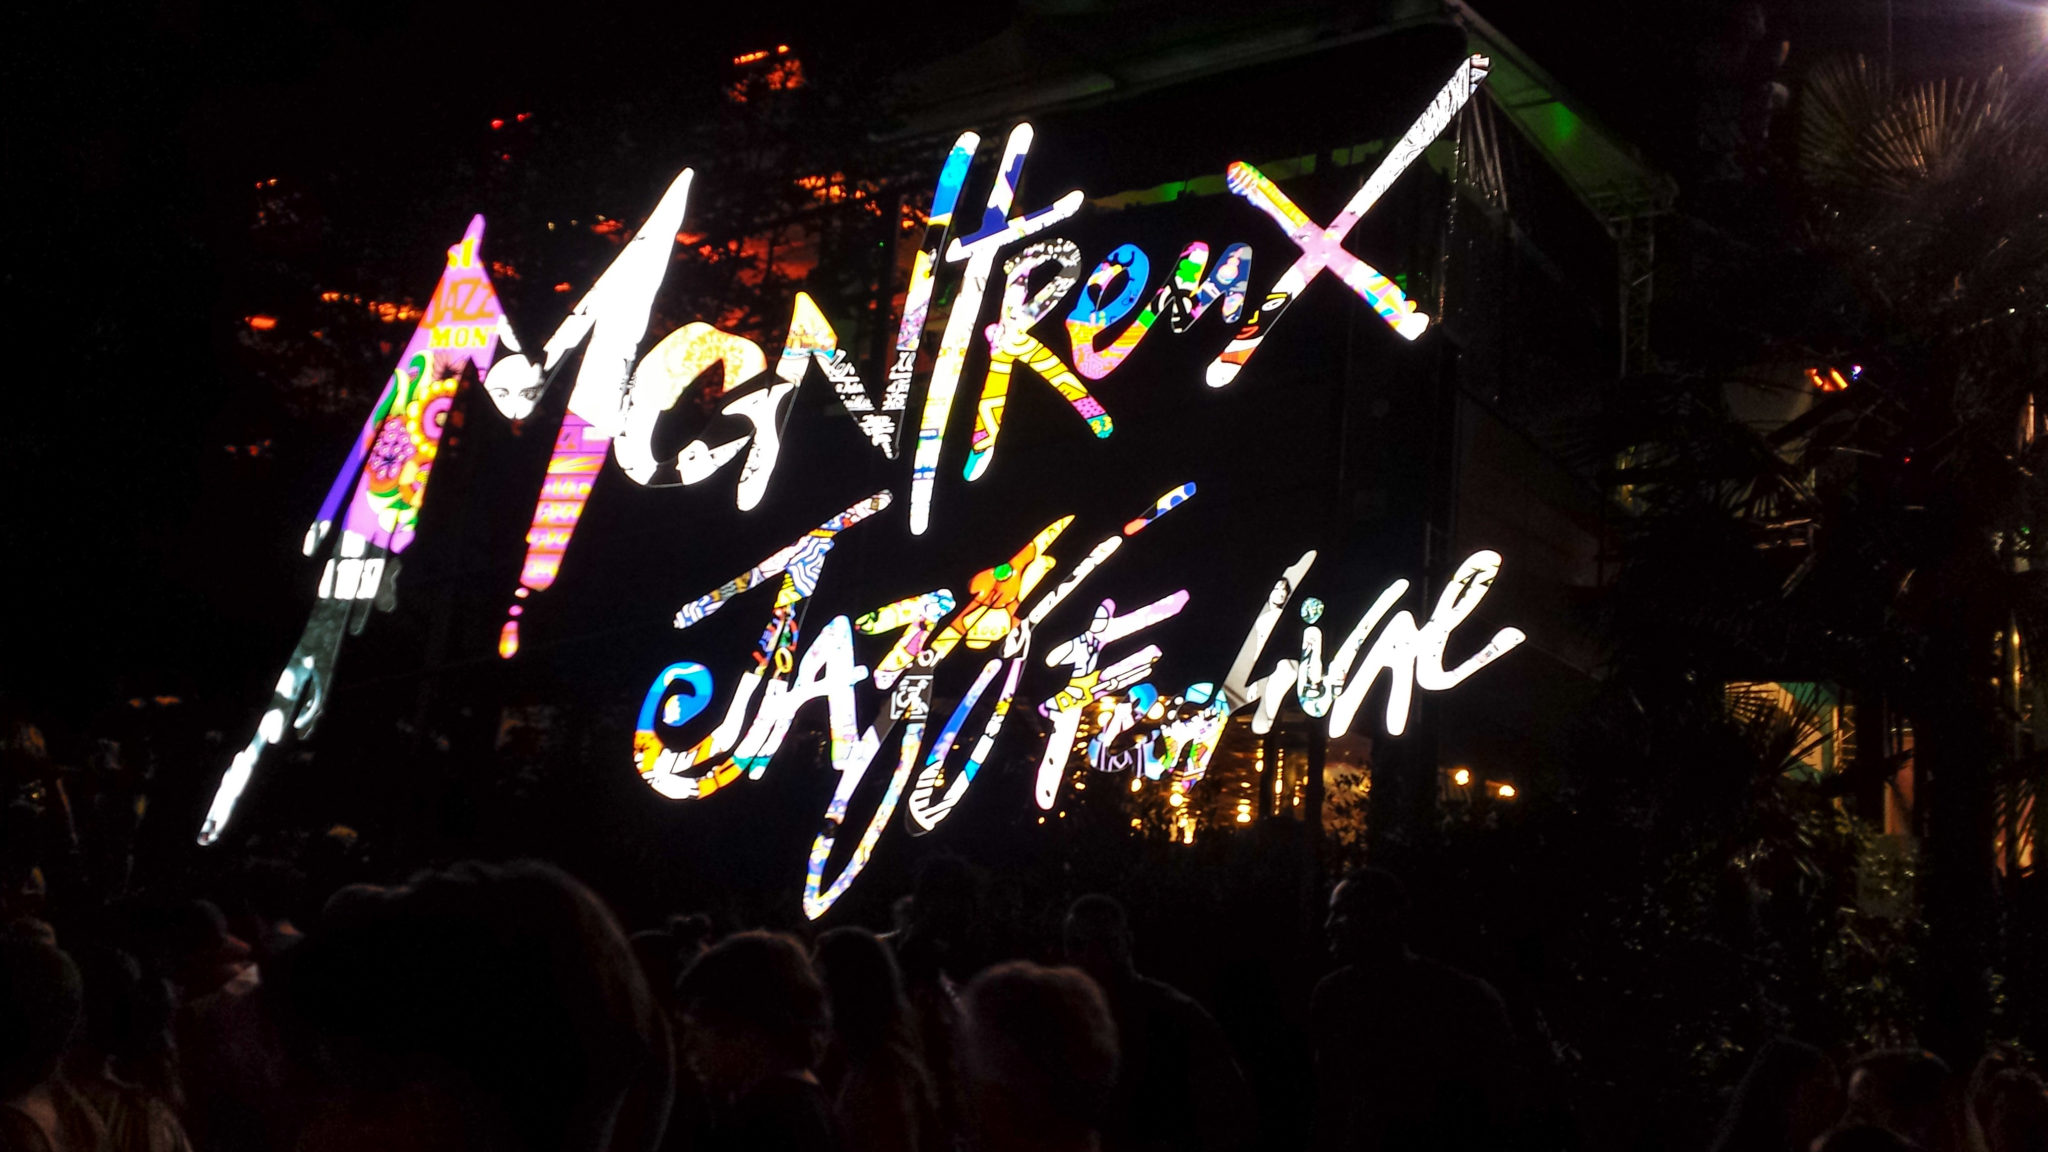 Swiss riviera travel guide Montreux, Vevey, Geneva highlights, top places and tips by Bulgarian blogger Michaella from Quite a Looker / Montreux Jazz Festival 2018